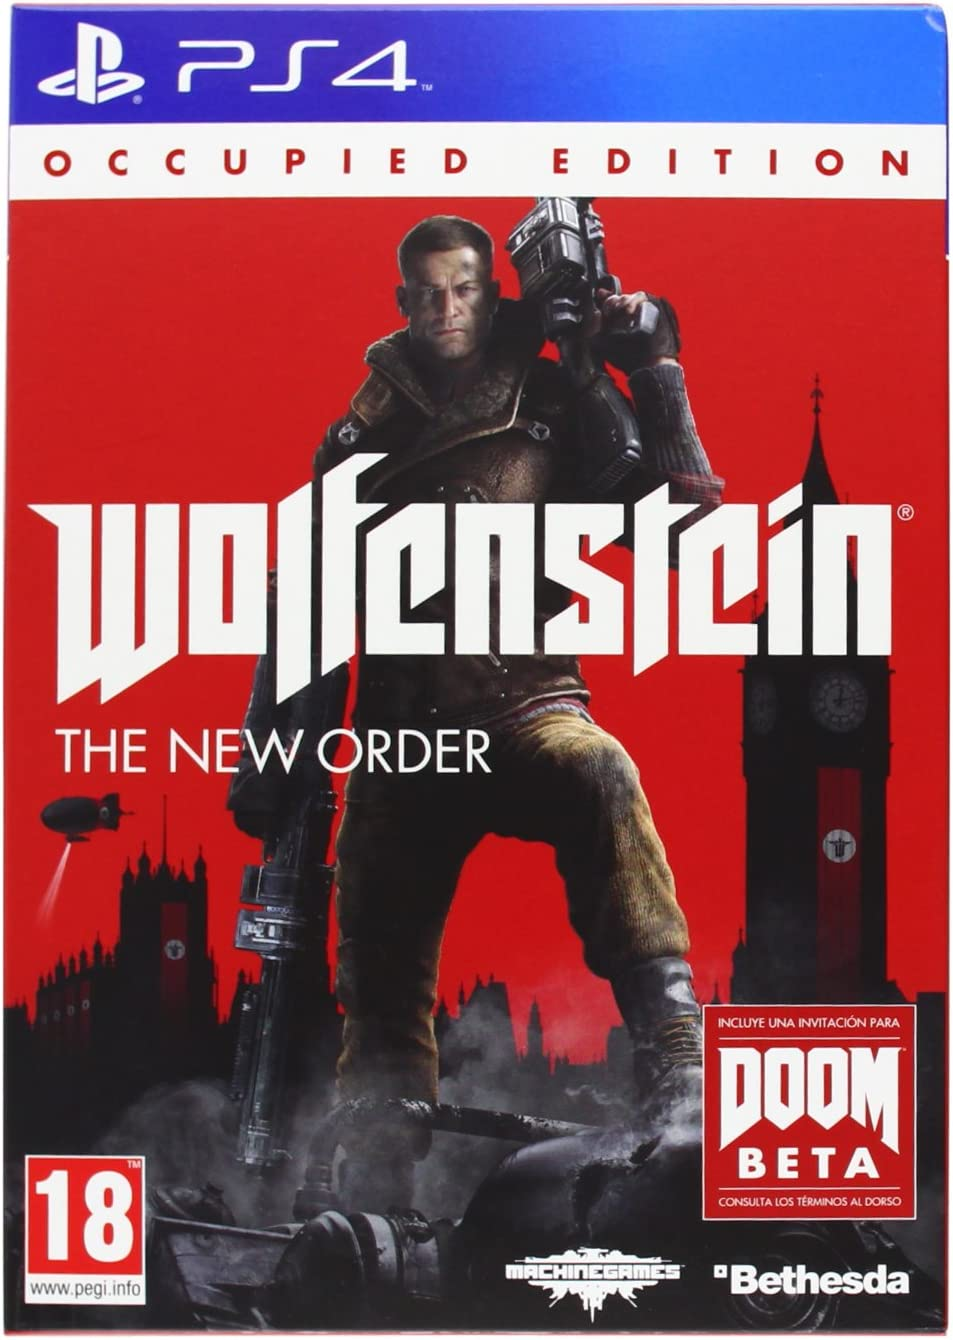 Wolfenstein: The New Order - Occupied Edition: Amazon.es: Videojuegos